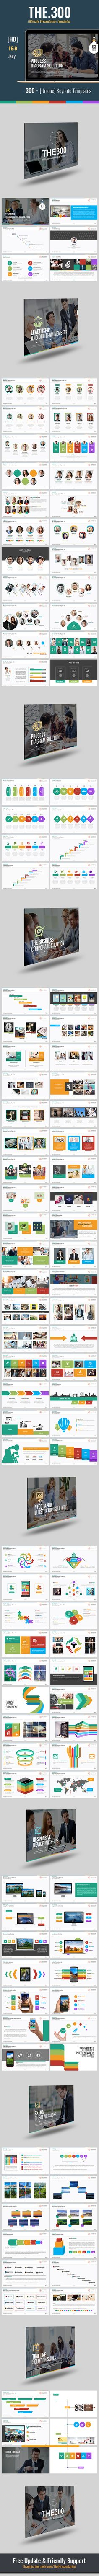 THE.300 - Ultimate Keynote Templates http://graphicriver.net/item/the300-ultimate-keynote-templates/13346567